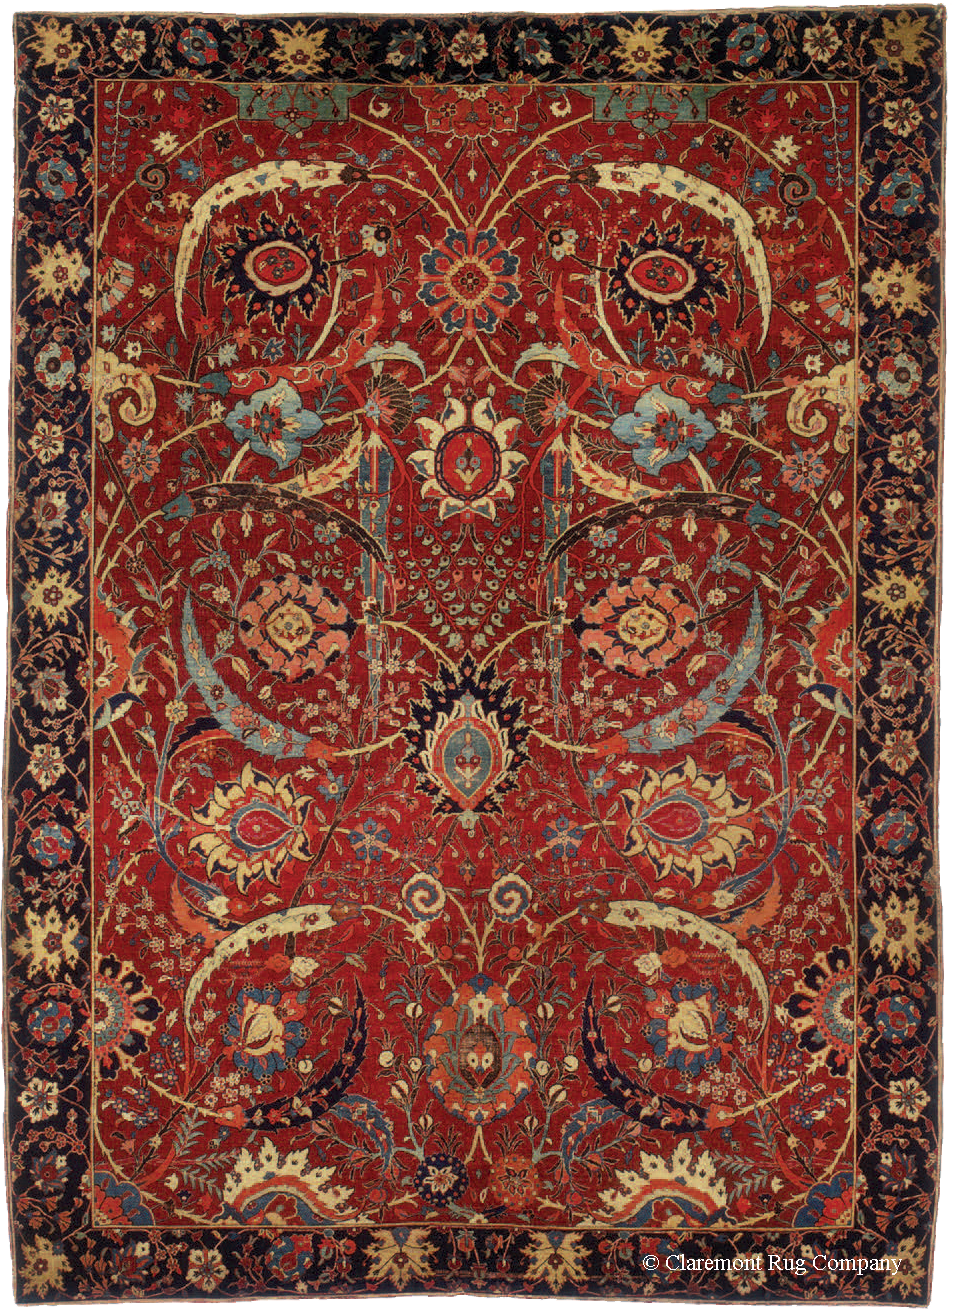 17th century Persian Sickle Leaf Kirman carpet sold at Sotheby's in June of 2013 for $33.8M (est. $5-$7M), the highest price ever paid in auction for an Oriental rug, more than three times the previous world record price